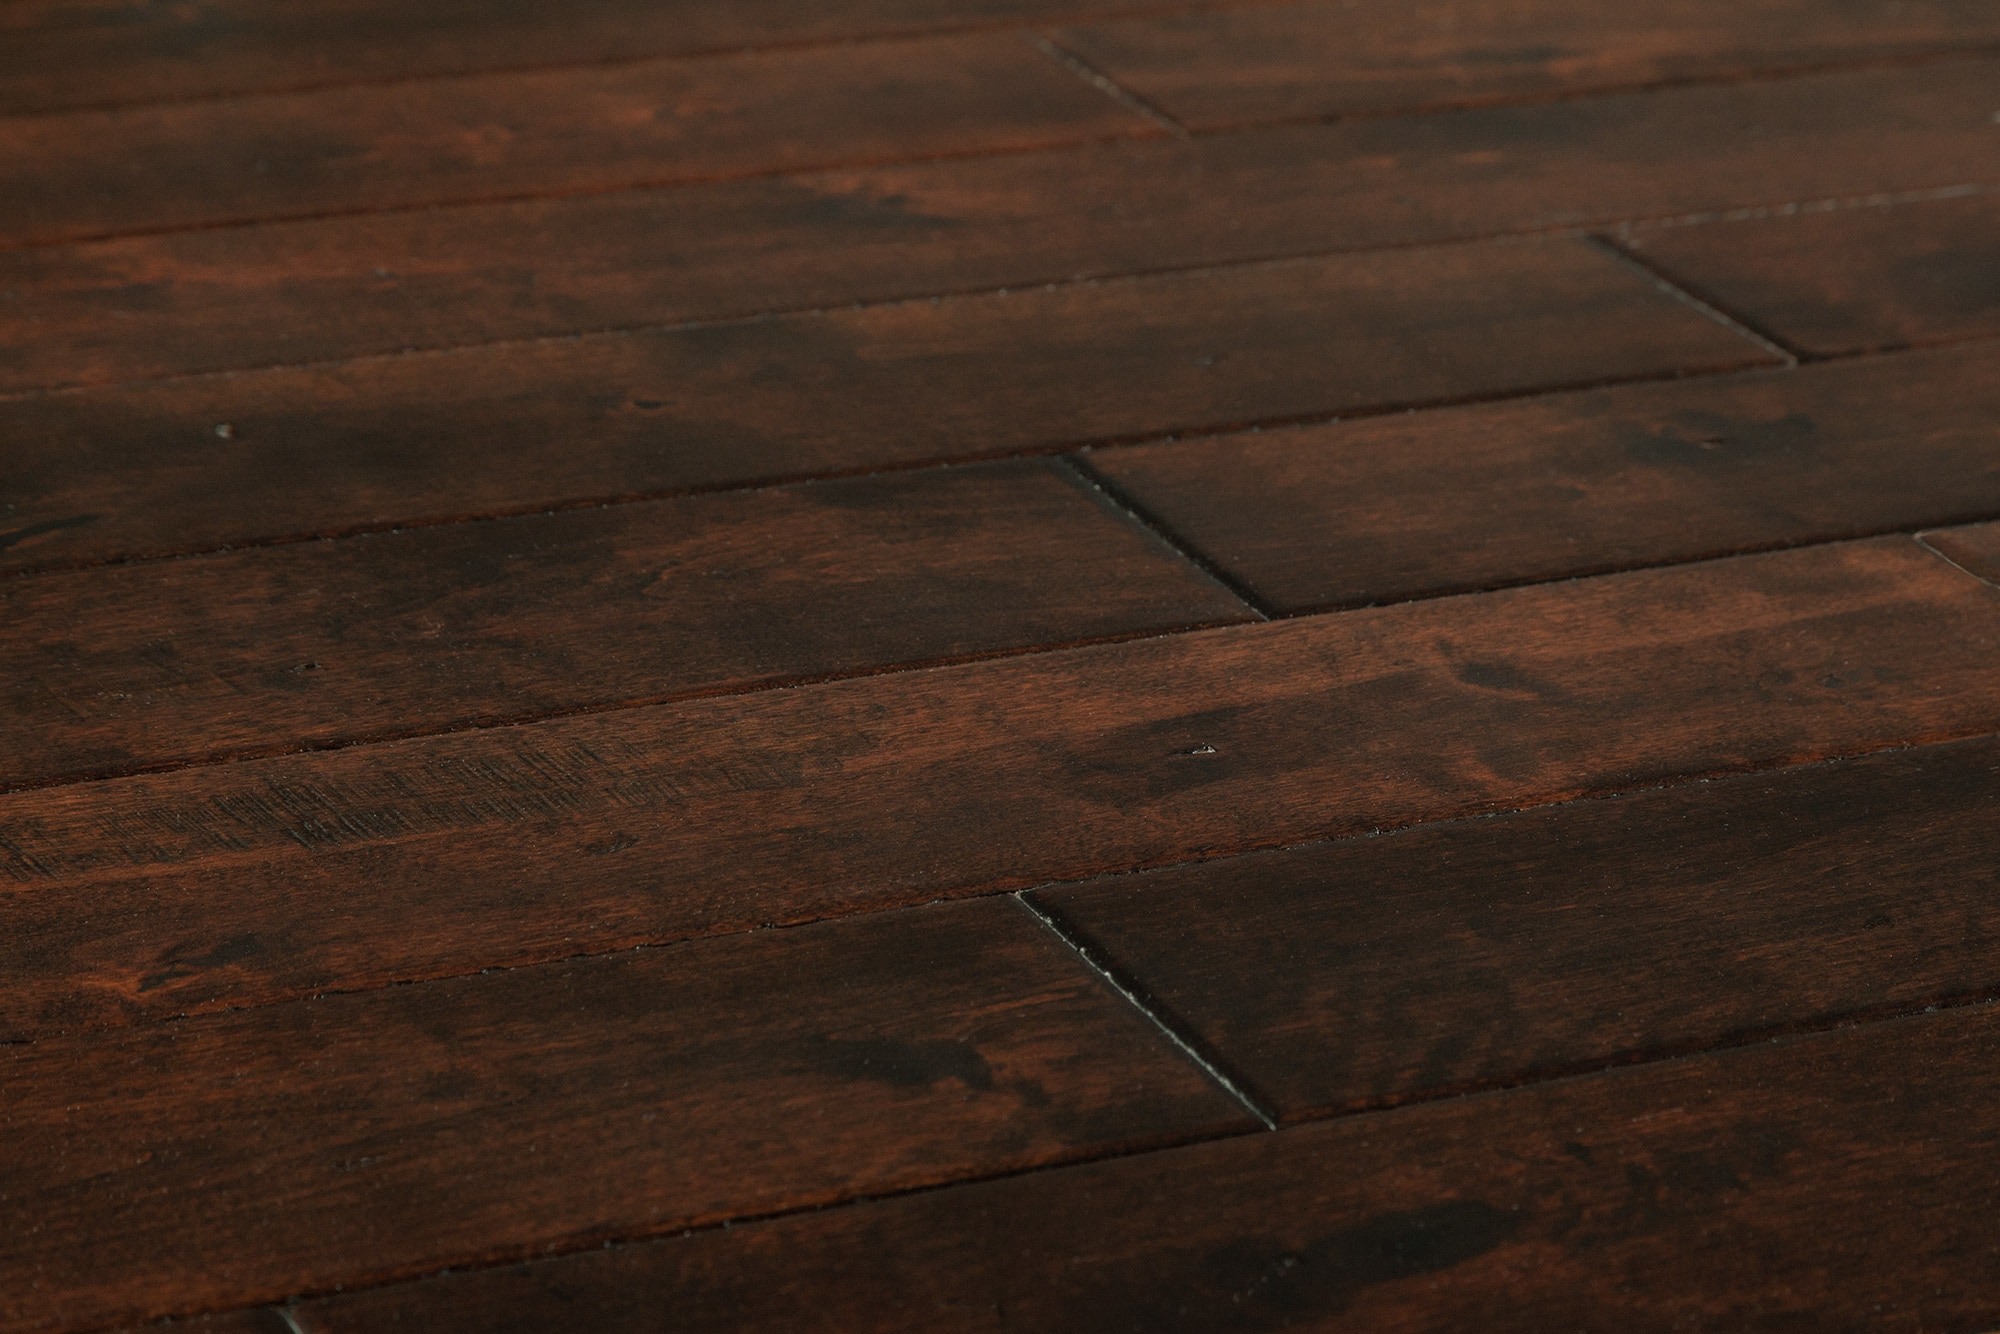 Birch Hardwood Flooring this is a 34 in thick solid hardwood red birch floor 3 14 in wide its made by lauzon wood floors so you know its premium stuff Jasper Hardwood Flooring Classic Birch Collection Coffee Bean Birch Builders 5 Distressed